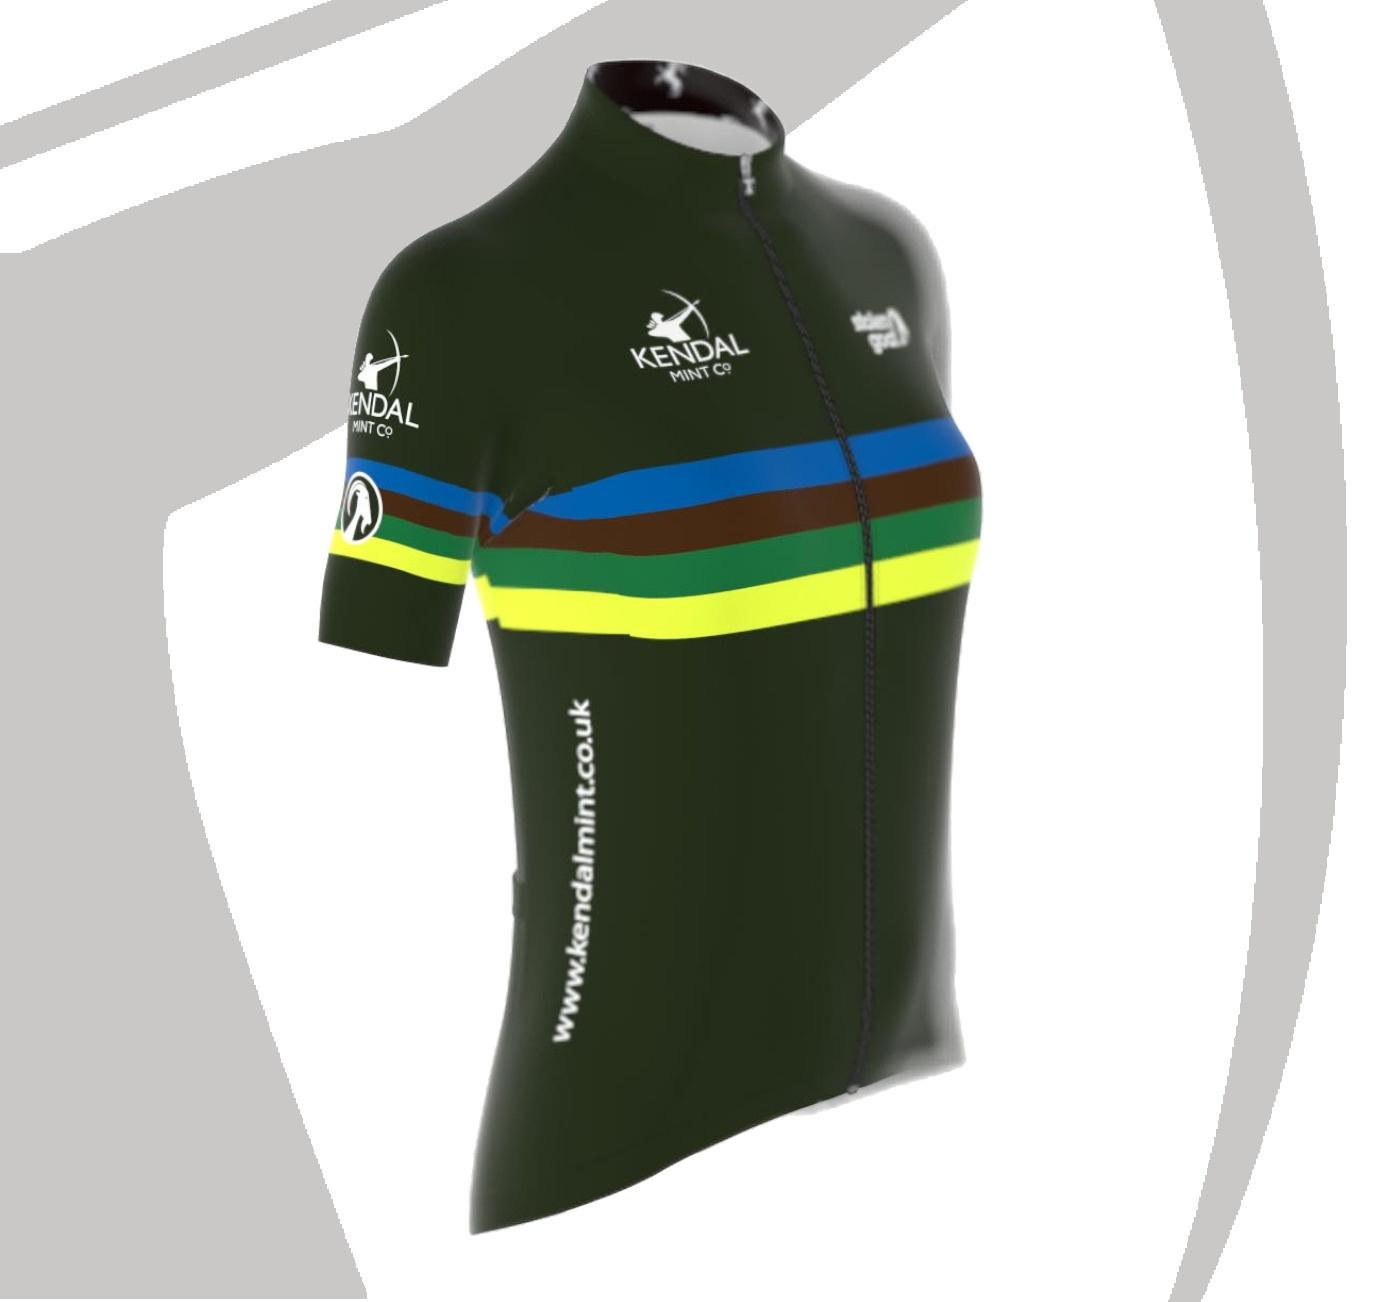 Kendal mint women's bodyline cycling jersey